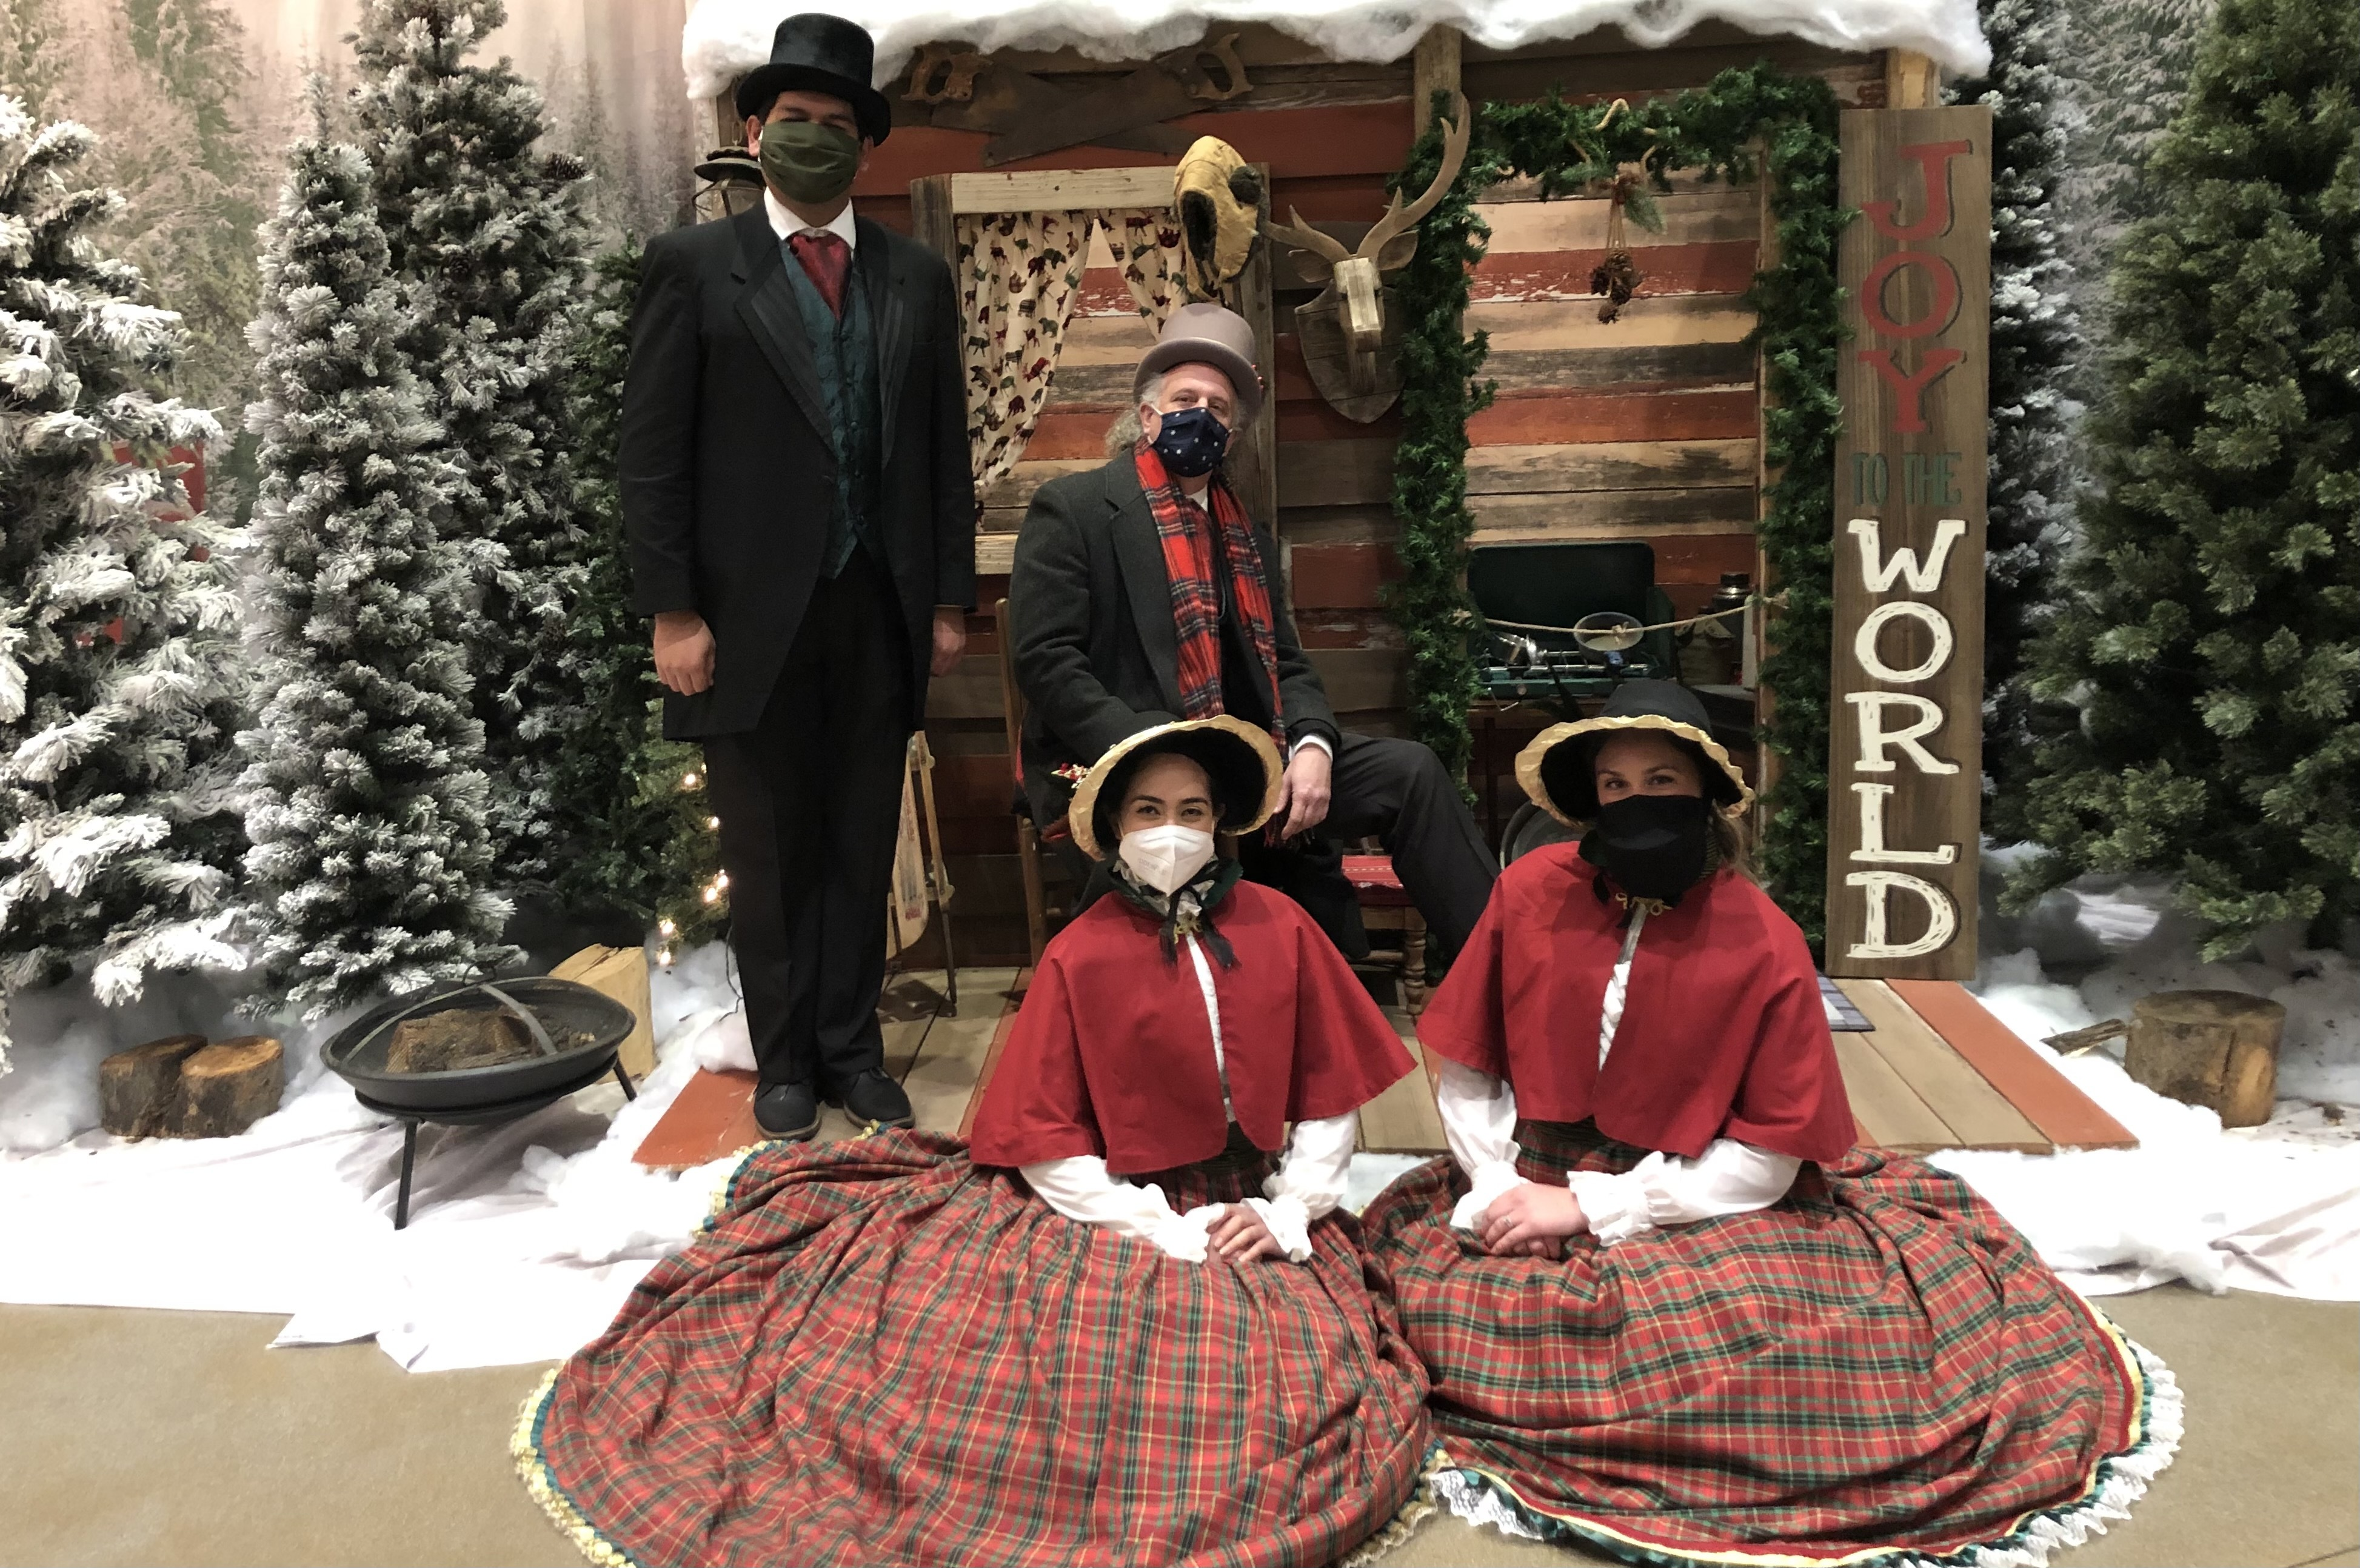 Carolers wearing traditional victorian garb and masks, posed in front of a scenic holiday winterland